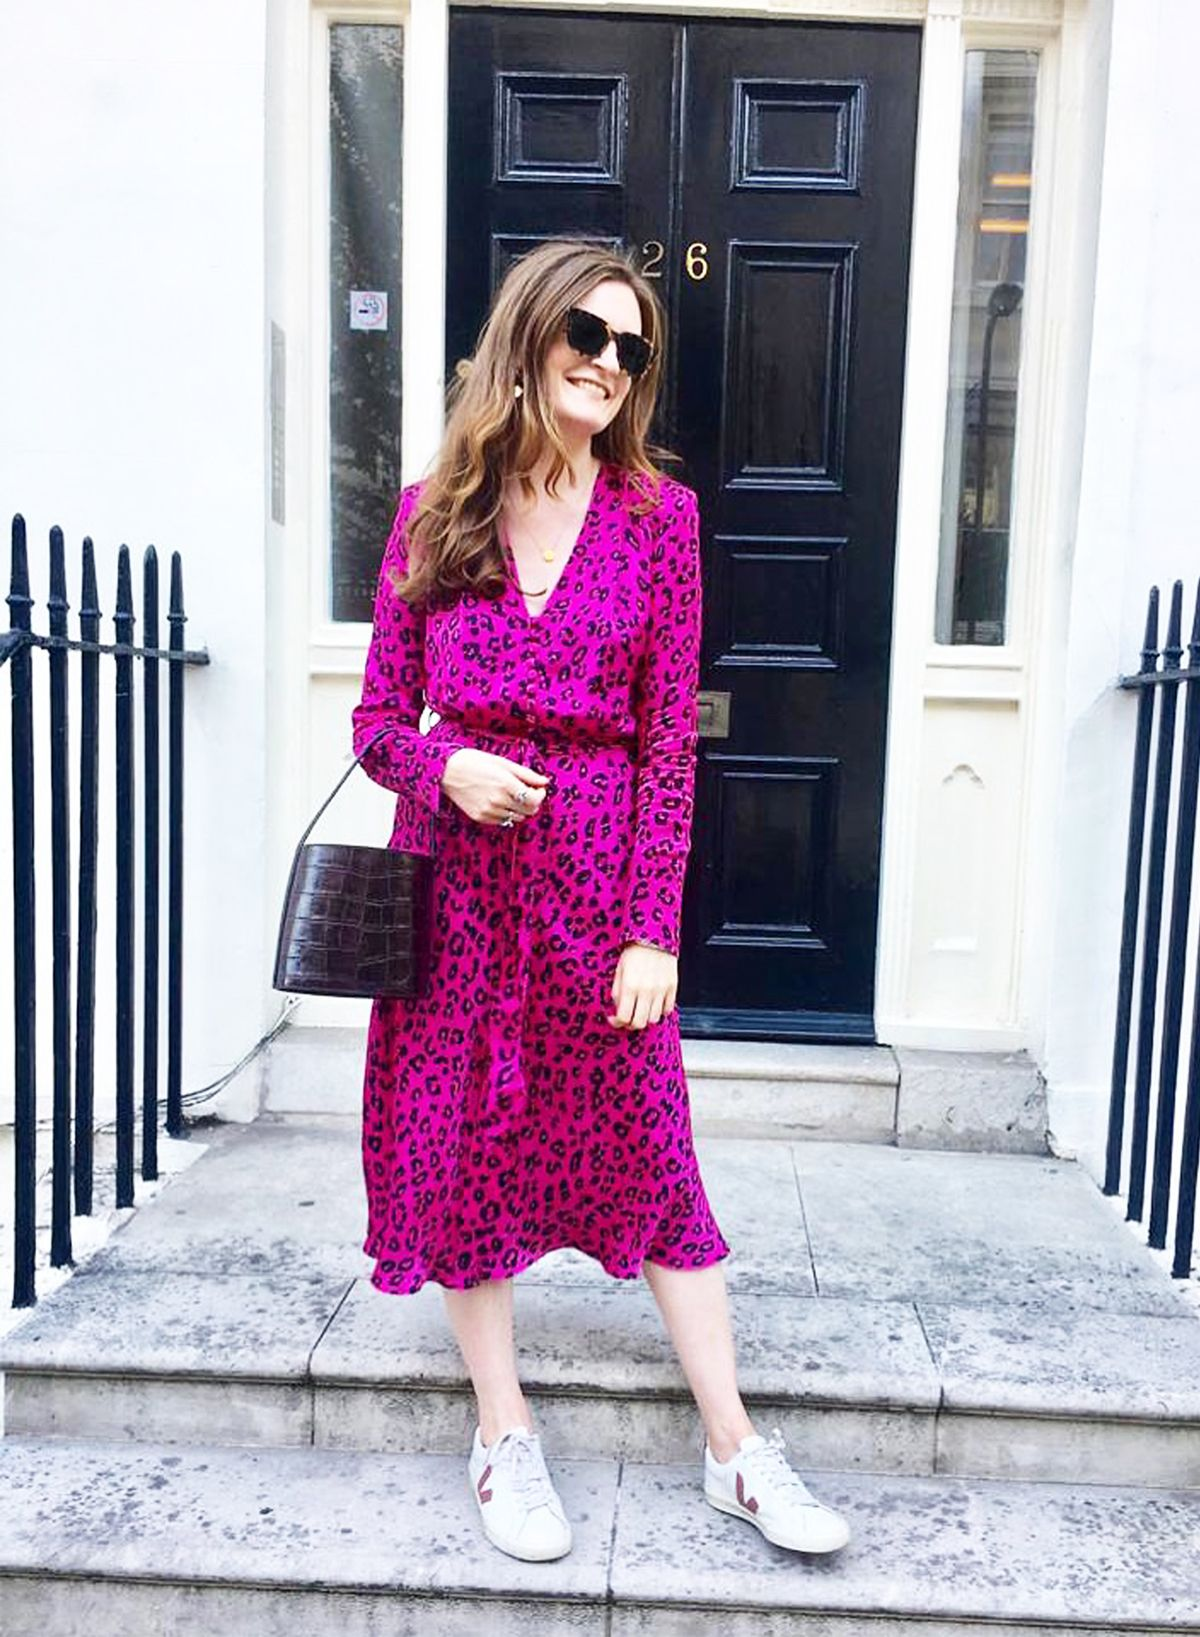 I Halved My Wardrobe, and It's Actually Made Me More Stylish